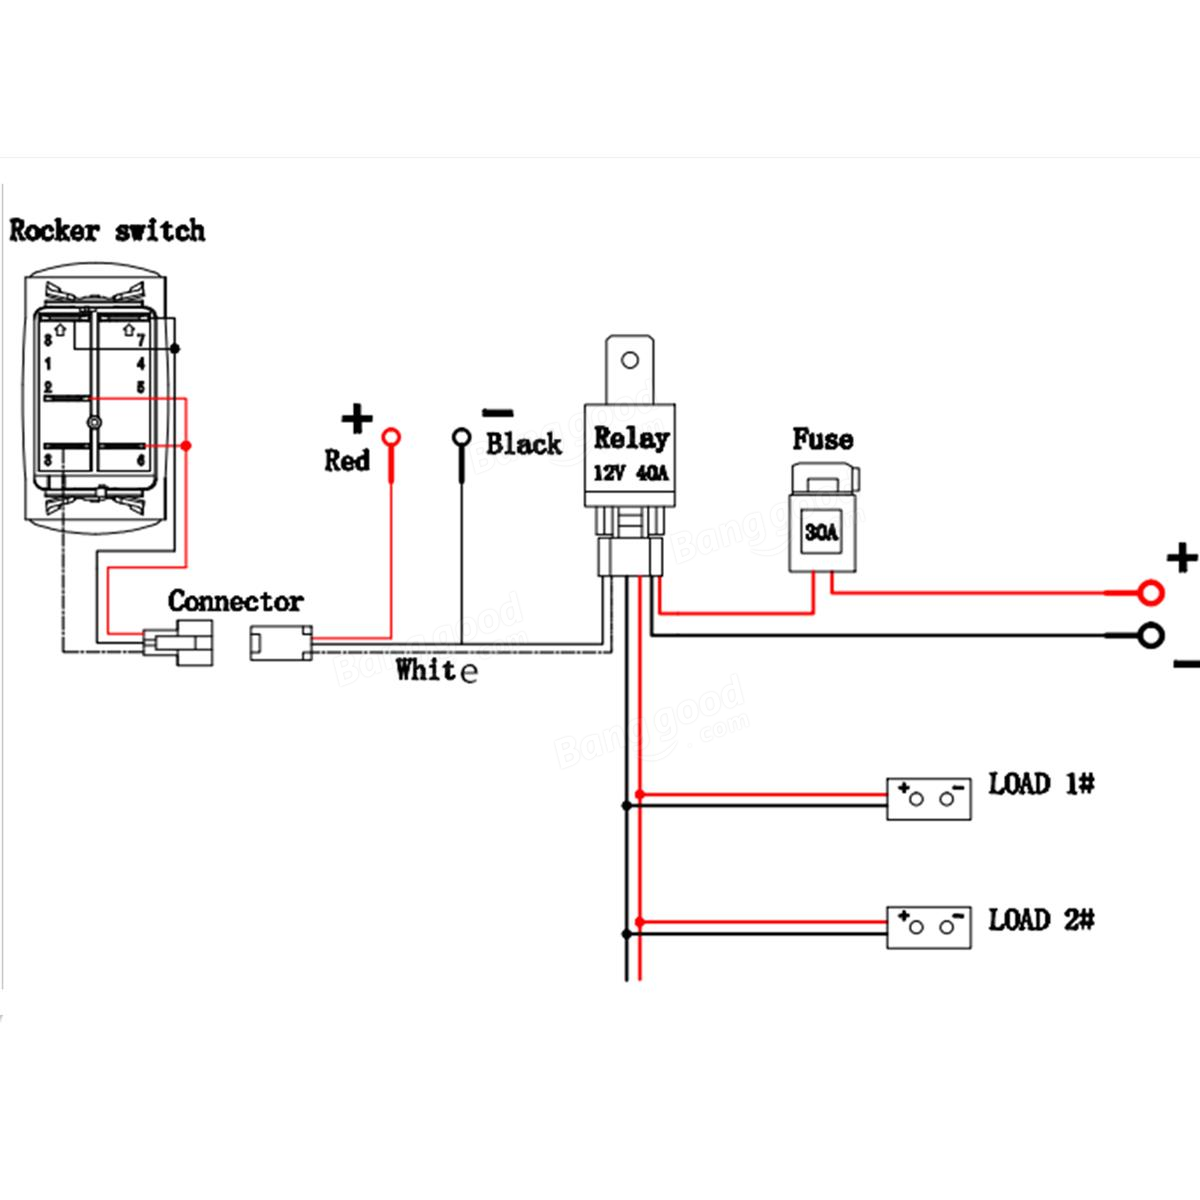 arb air locker compressor switch wiring diagram with Arb Wiring Harness Switches And Selling My House on 2013 05 01 archive further Ingersoll Rand Air  pressor Wiring Diagram further Arb Wiring Harness Switches And Selling My House besides Viewtopic likewise Arb Wiring Harness Schematic.